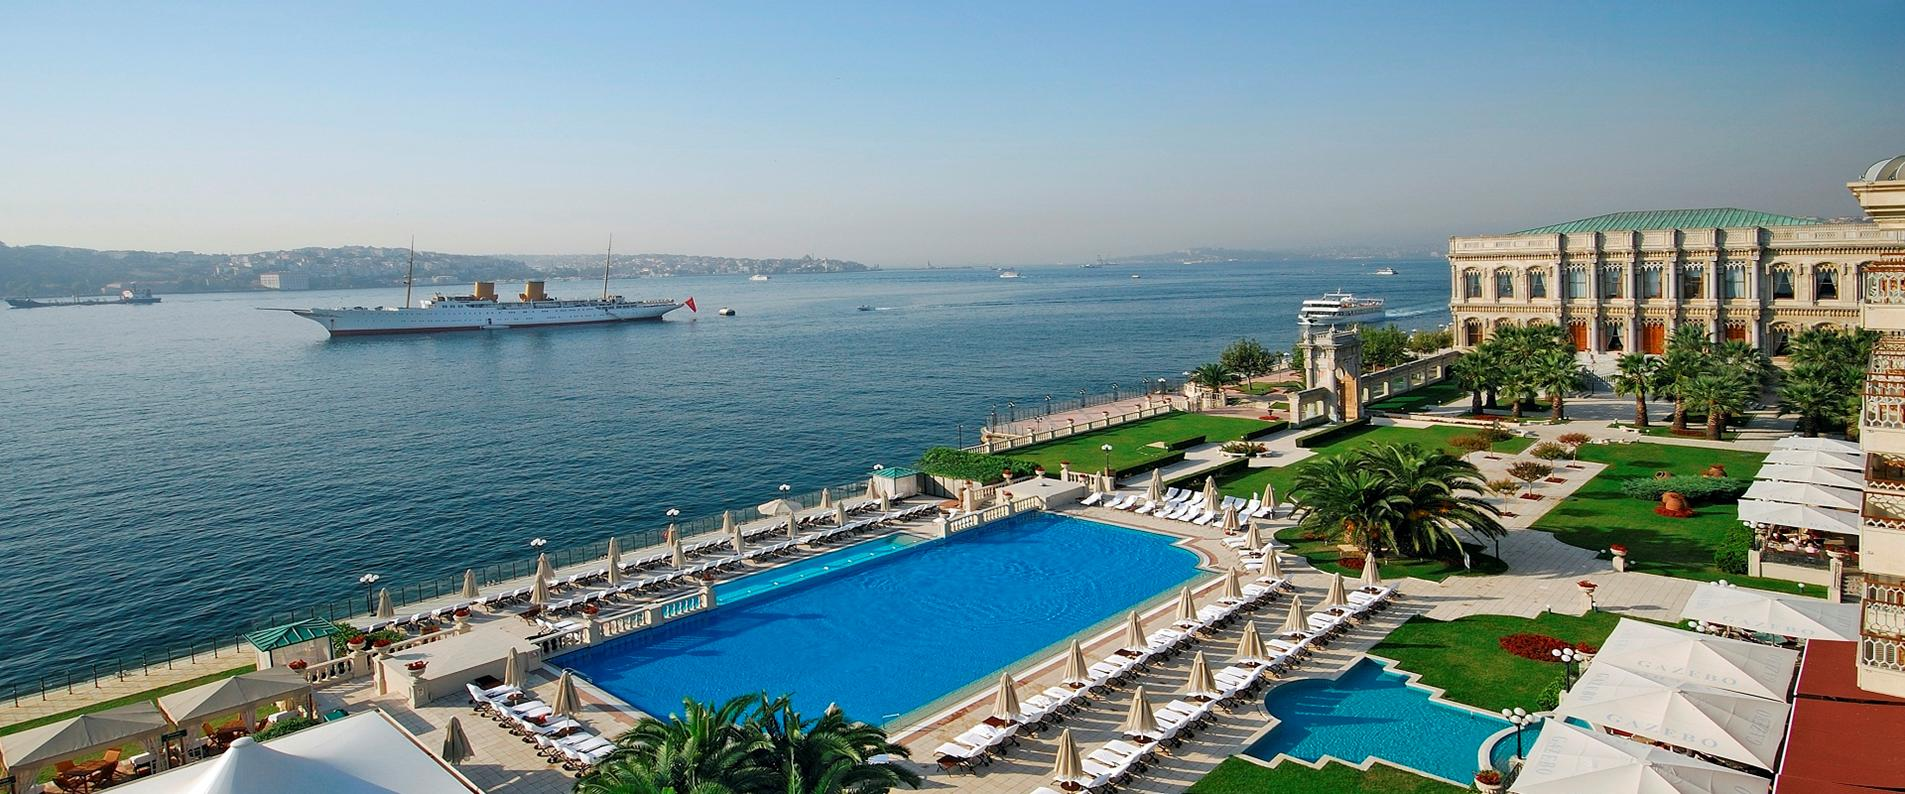 Ciragan Palace Kempinski Istanbul, Neo-Baroque style Ortakoy Mosque, Ortakoy Pier Square, Tugra Turkish restaurant, Istanbul luxurious hotel,